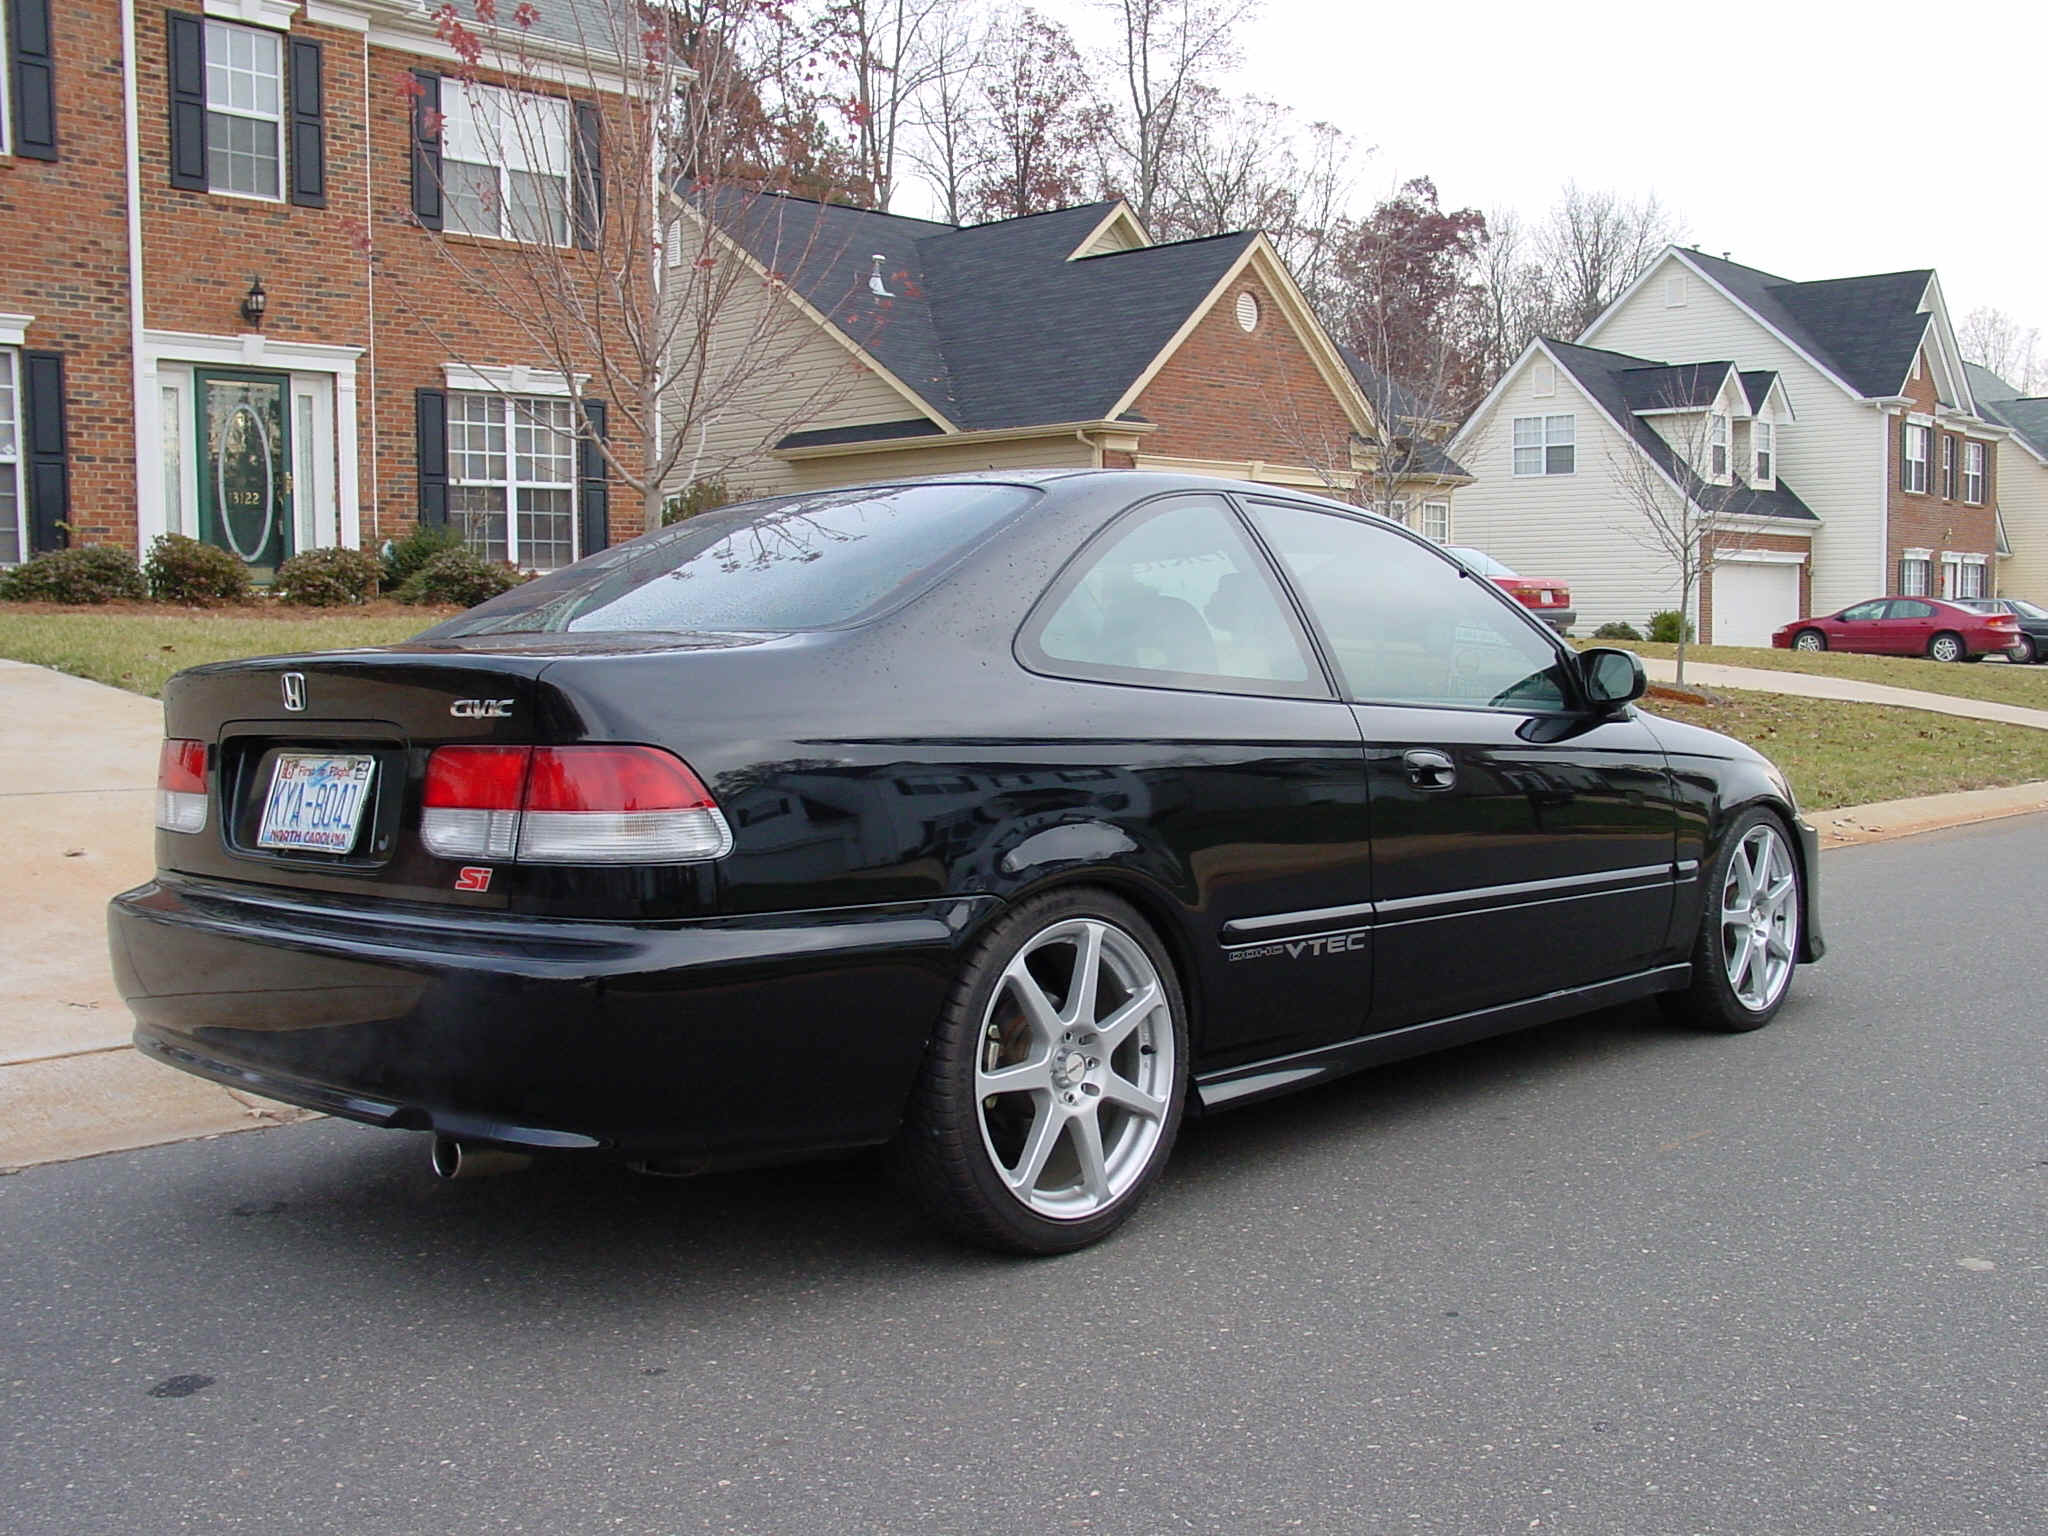 2000 honda civic si - photo #27